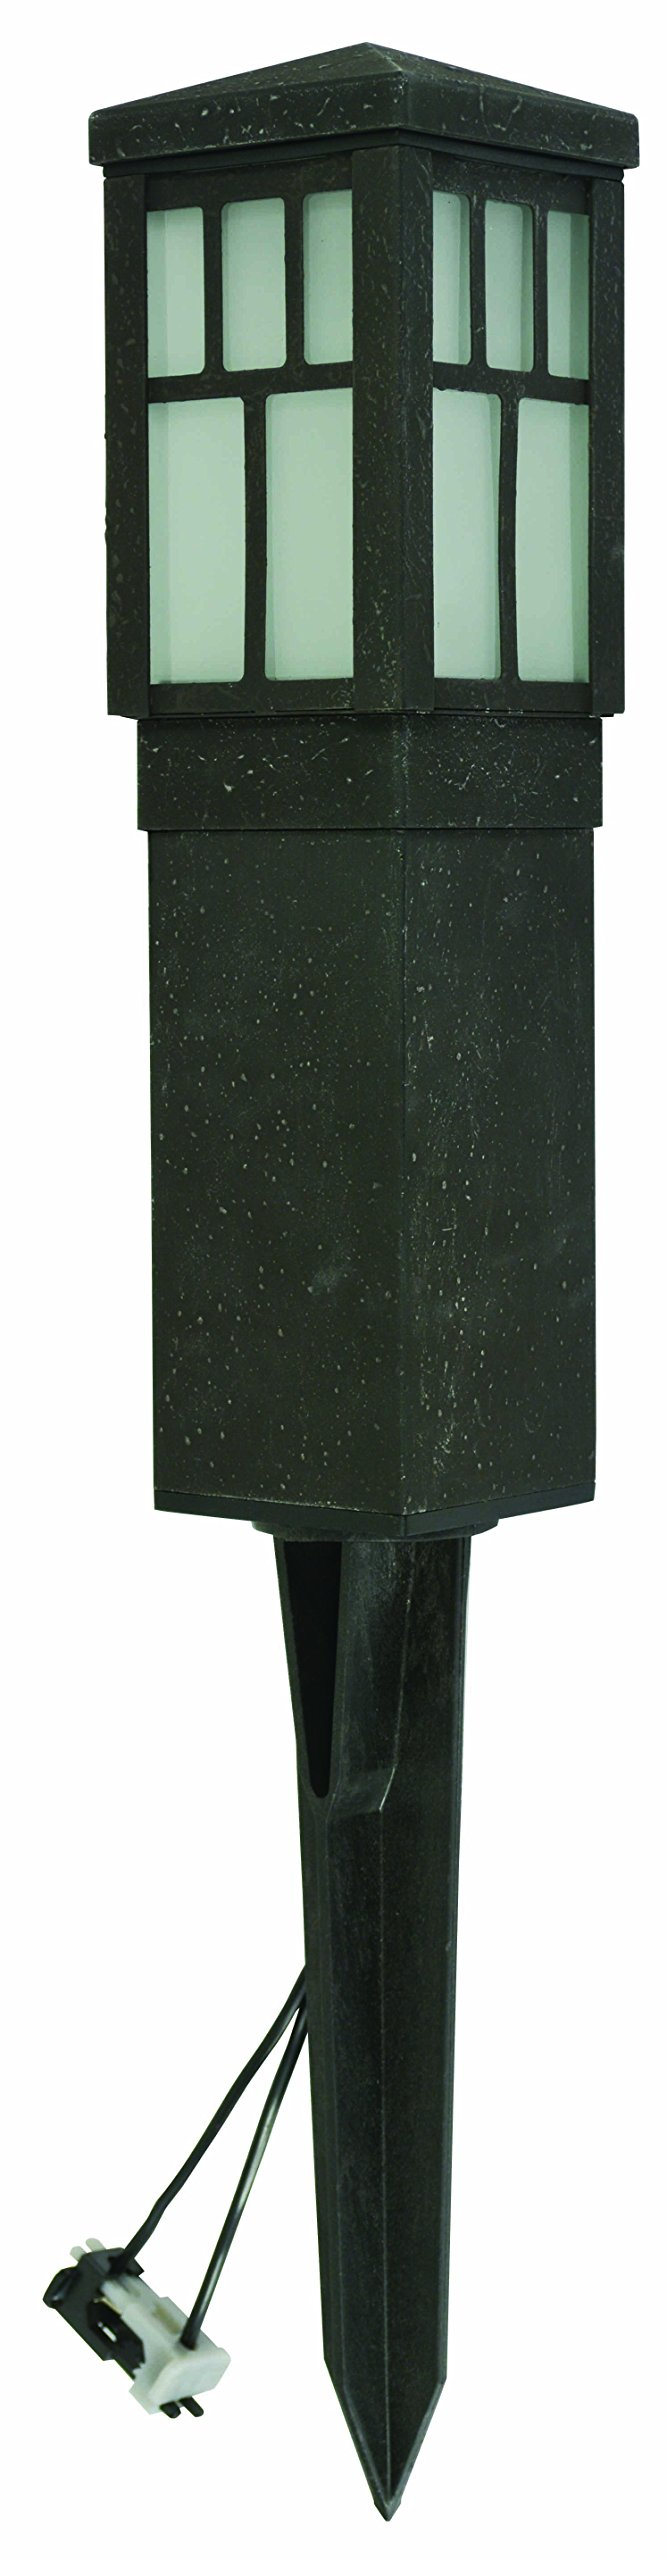 LED Landscape Lighting Malibu 8419-4321-01 low voltage aged iron finish square metal bollard light 0.6watt